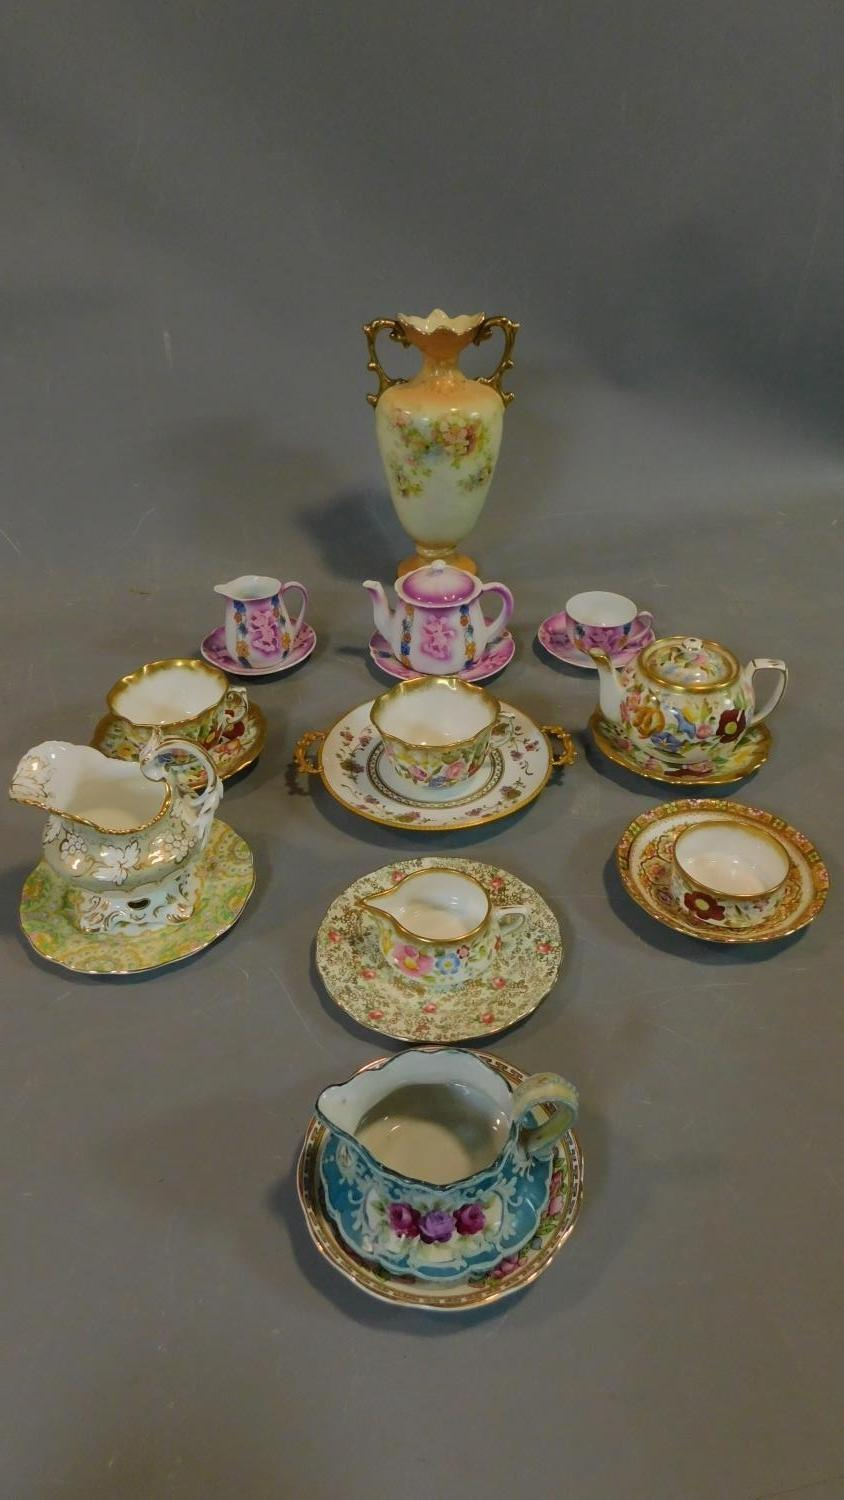 A miscellaneous collection of Victorian and later porcelain, vase, cups, saucers etc.